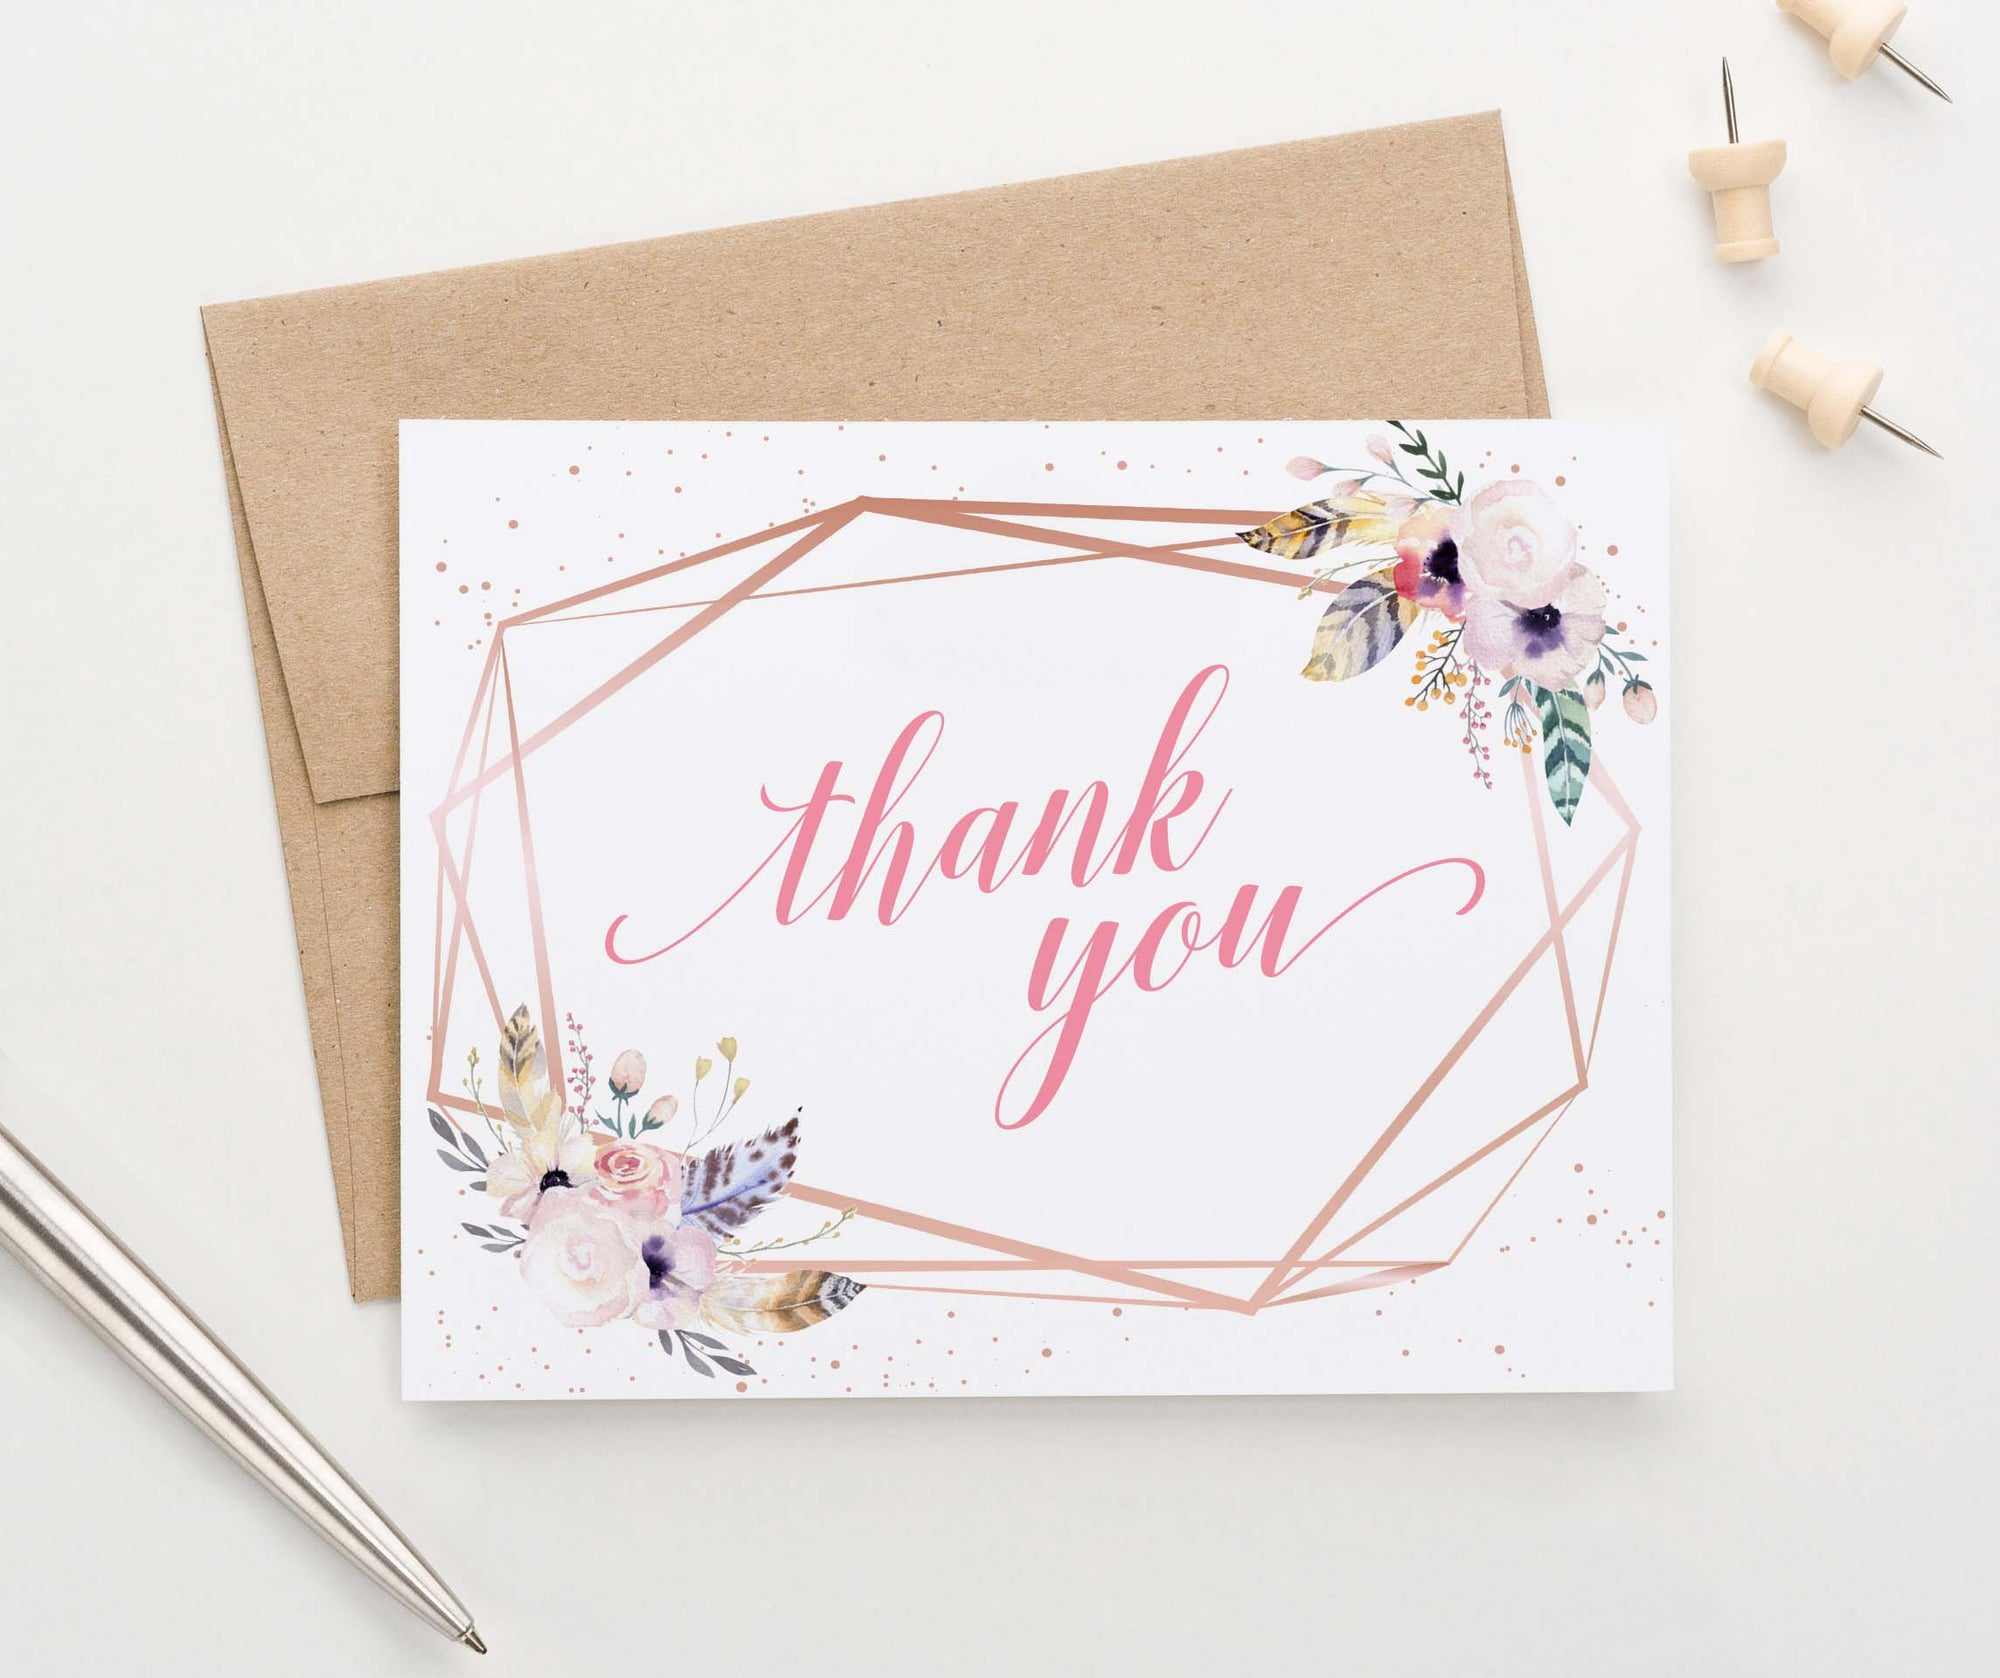 TY061 rose gold bohemian floral thank you cards geometric pink folded